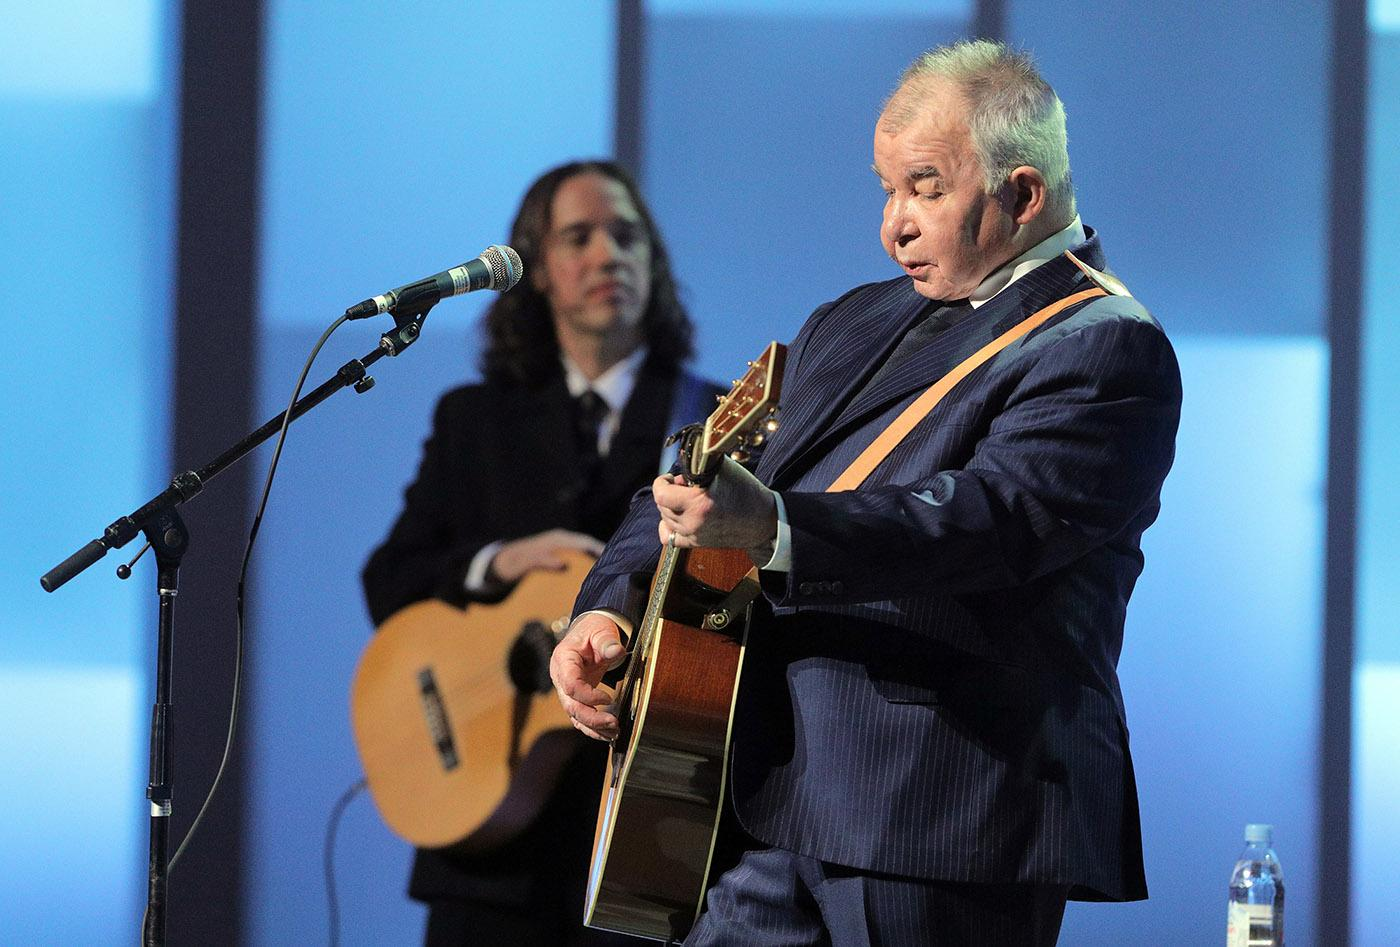 John Prine at Chicago Voices. (Cory Weaver, courtesy Lyric Opera of Chicago)